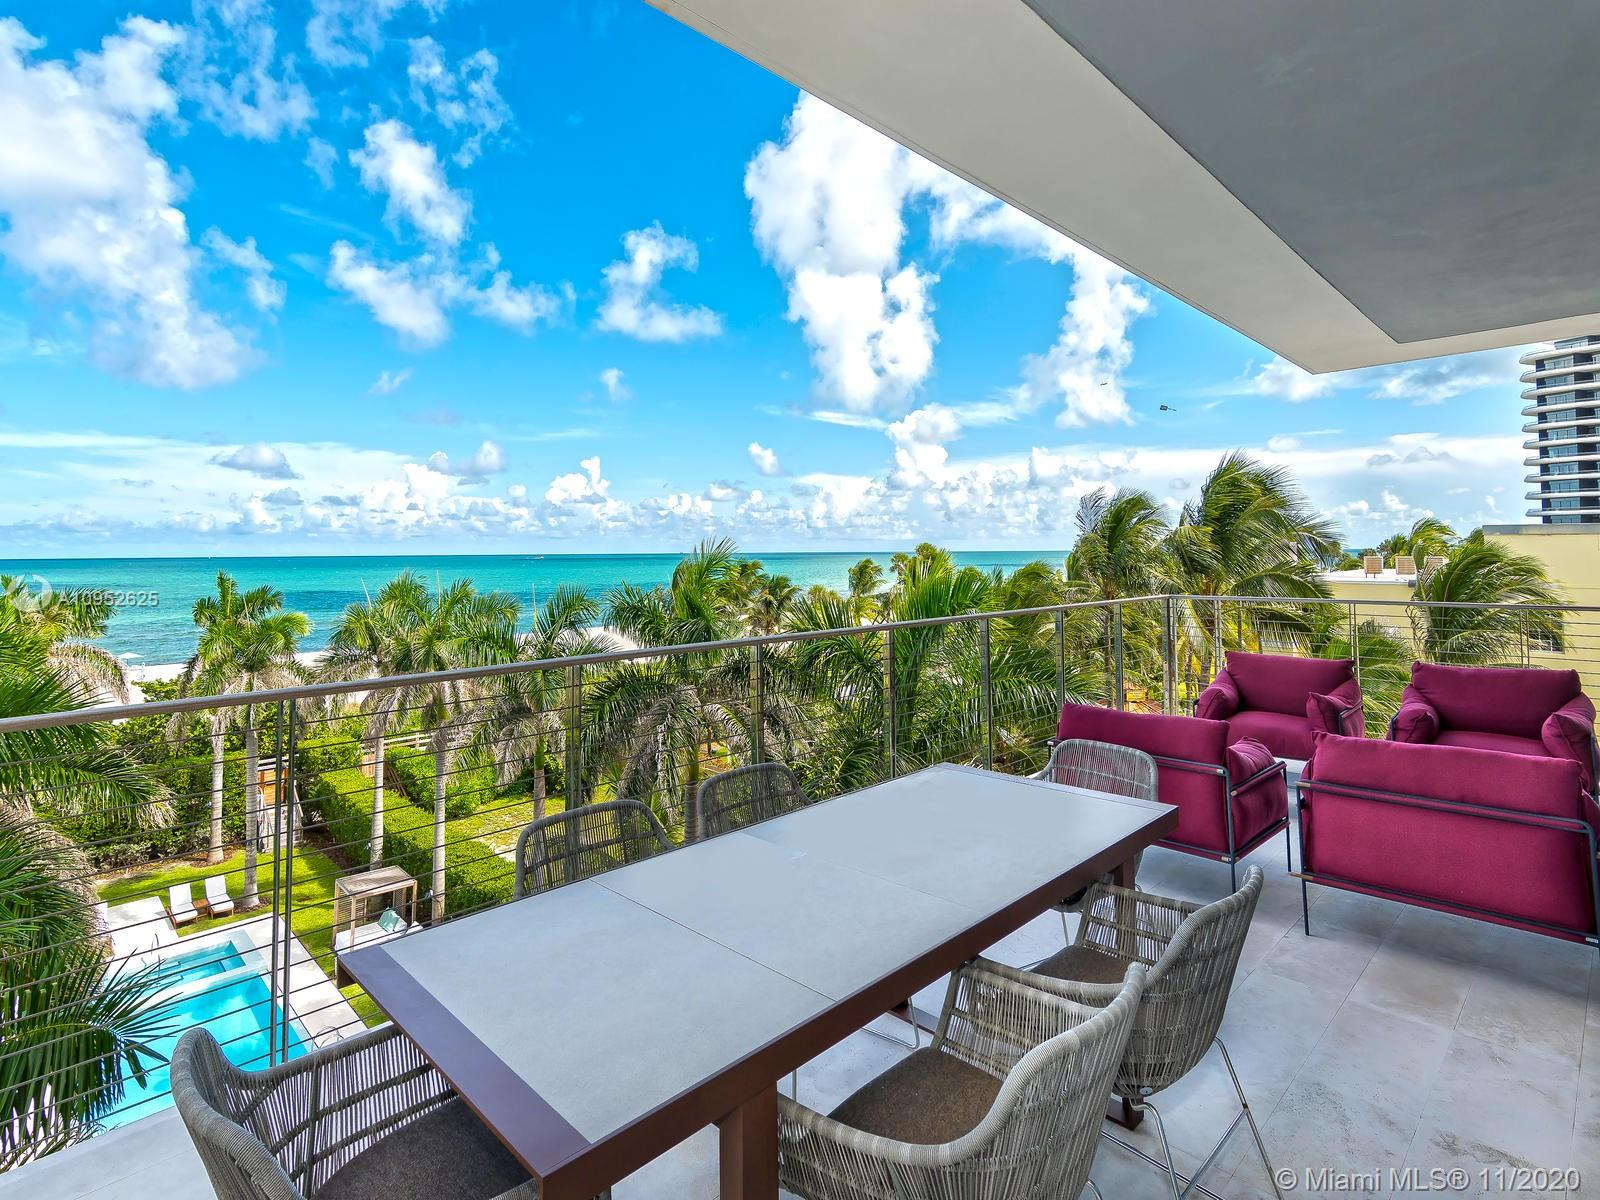 Looking for privacy? One of the most exclusive buildings in Miami with 7 units only. This is a duplex unit with 7 suites with more than 7,500 square ft in living area. The unit is sold professionally decorated and furnished. The unit came with with 4 car assigned garage and 2 cabanas. Building amenities includes 24 hours concierge, 75' pool w/jacuzzi, lounge & Technogym, yoga terrace & direct access to the beach. Qualified buyers only. For showing, kindly call Cassio Faccin.